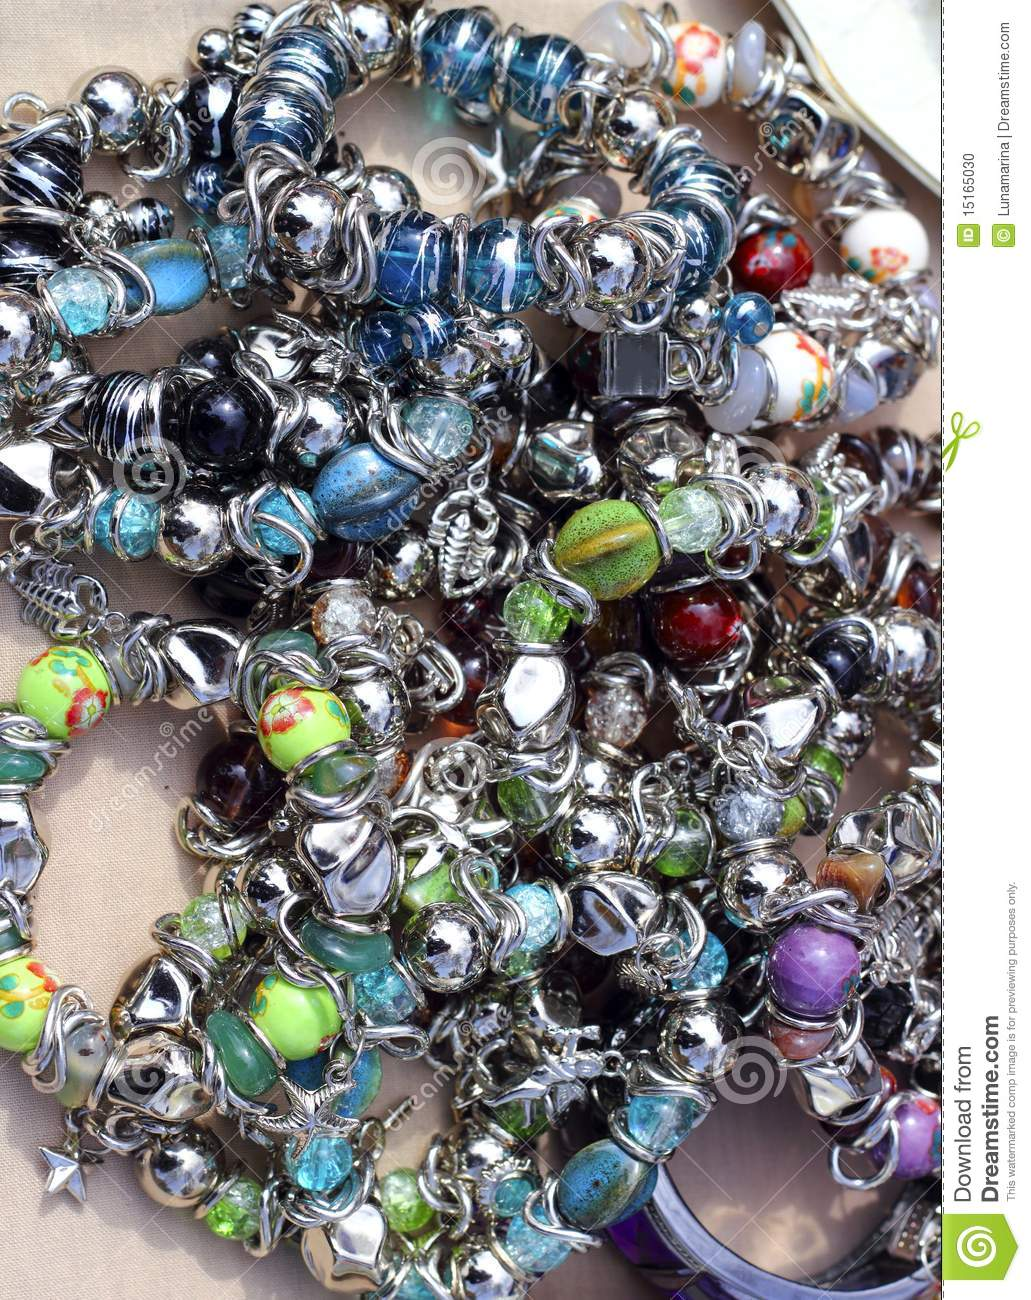 Colorful Jewelry Mess In Market Background Stock Photo ...